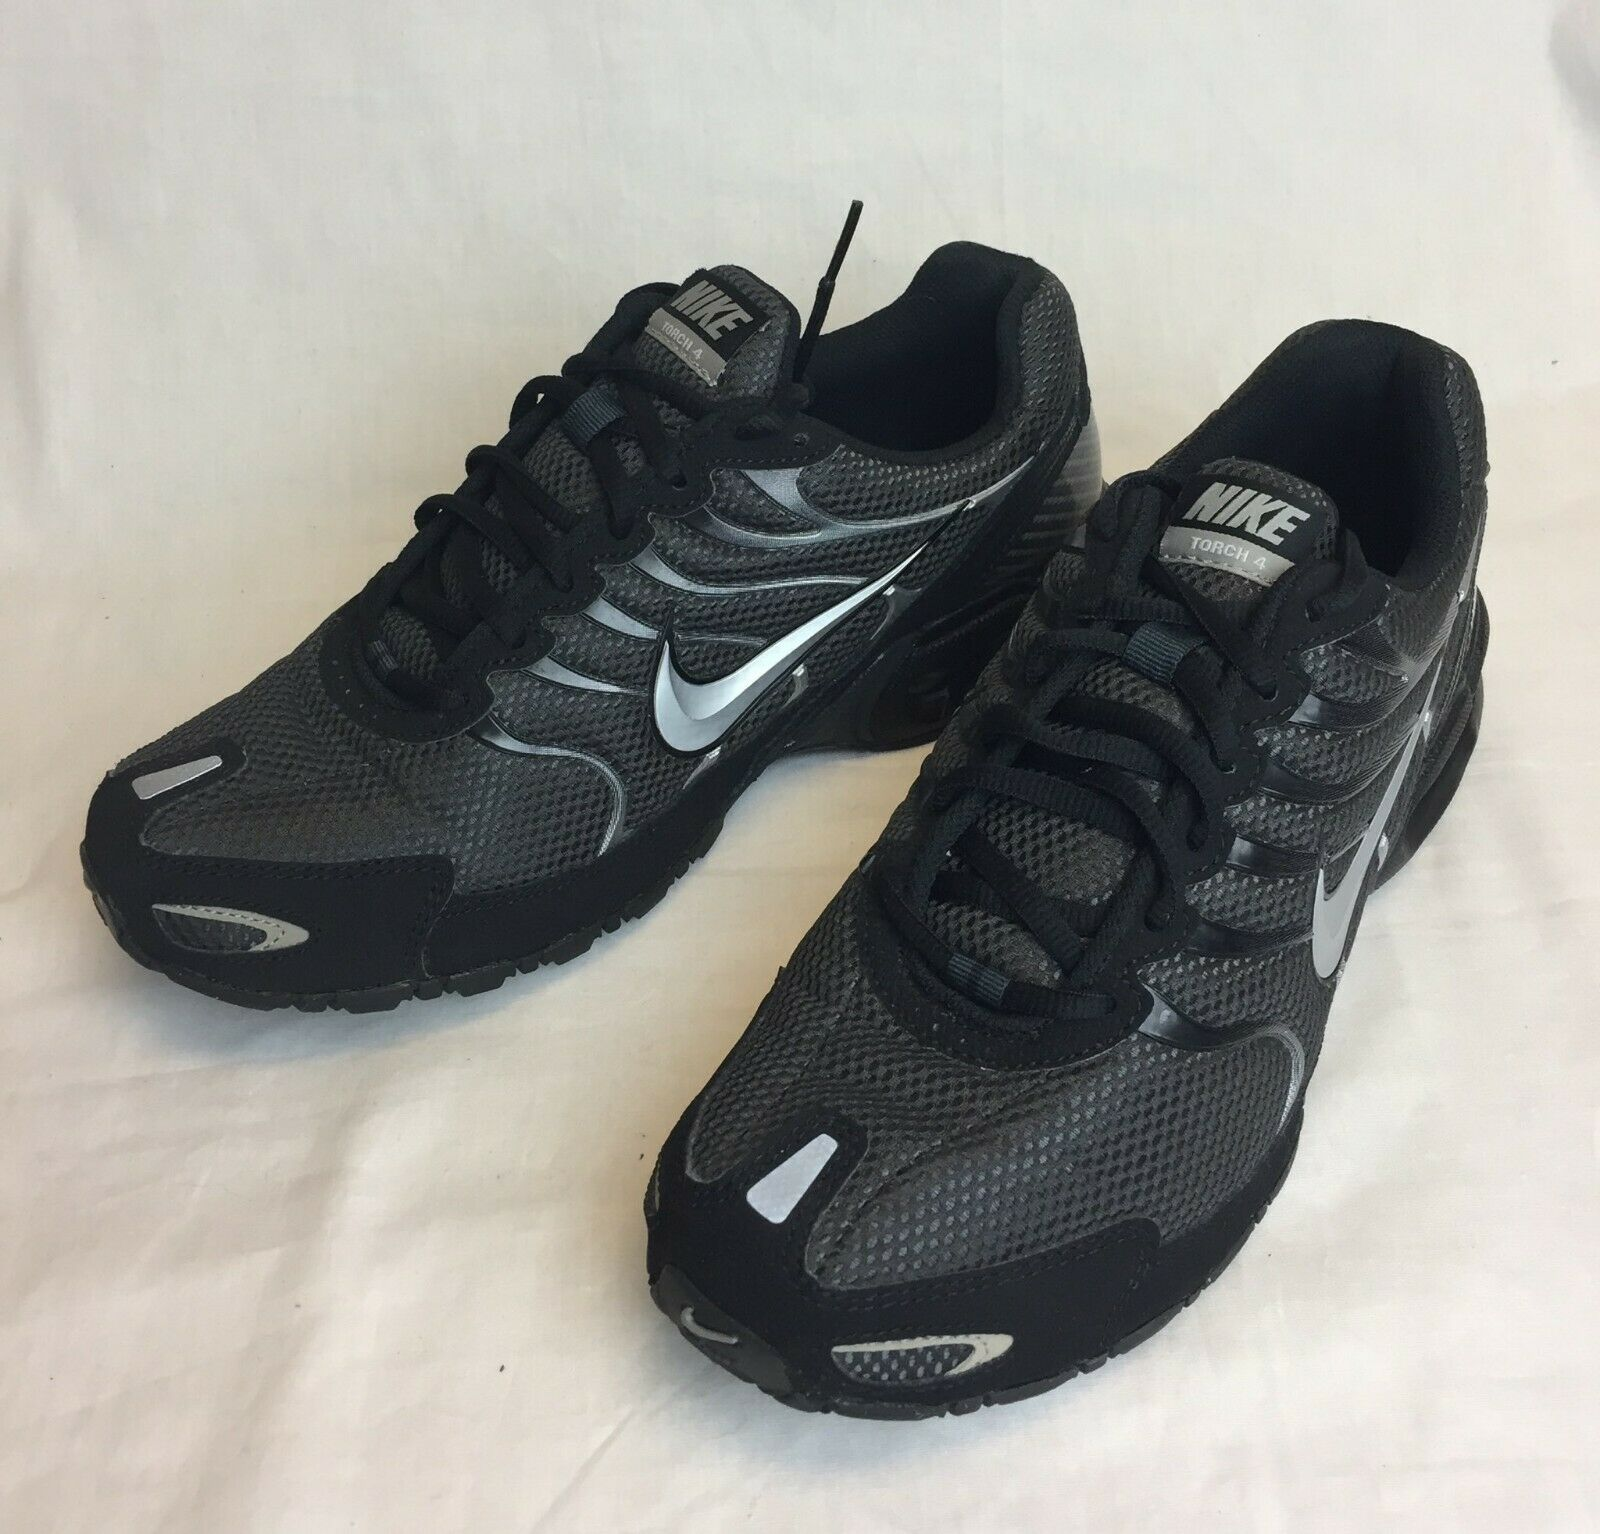 NIKE Men's Air Max Torch 4 Running shoes Sneakers, 343846-002, US 10